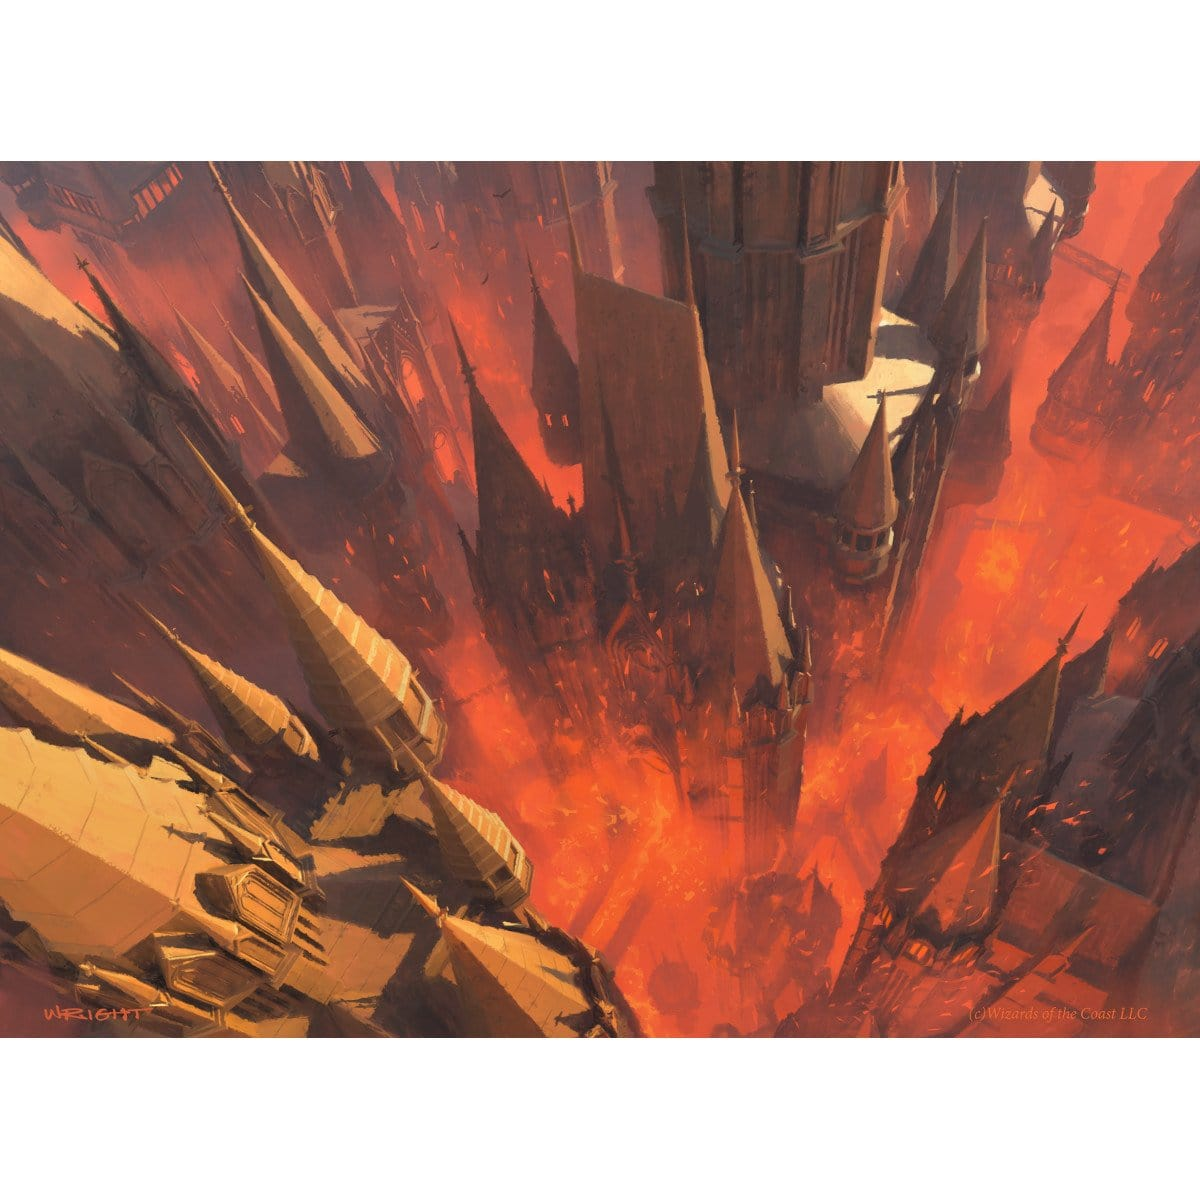 Mountain (Return to Ravnica) Print - Print - Original Magic Art - Accessories for Magic the Gathering and other card games